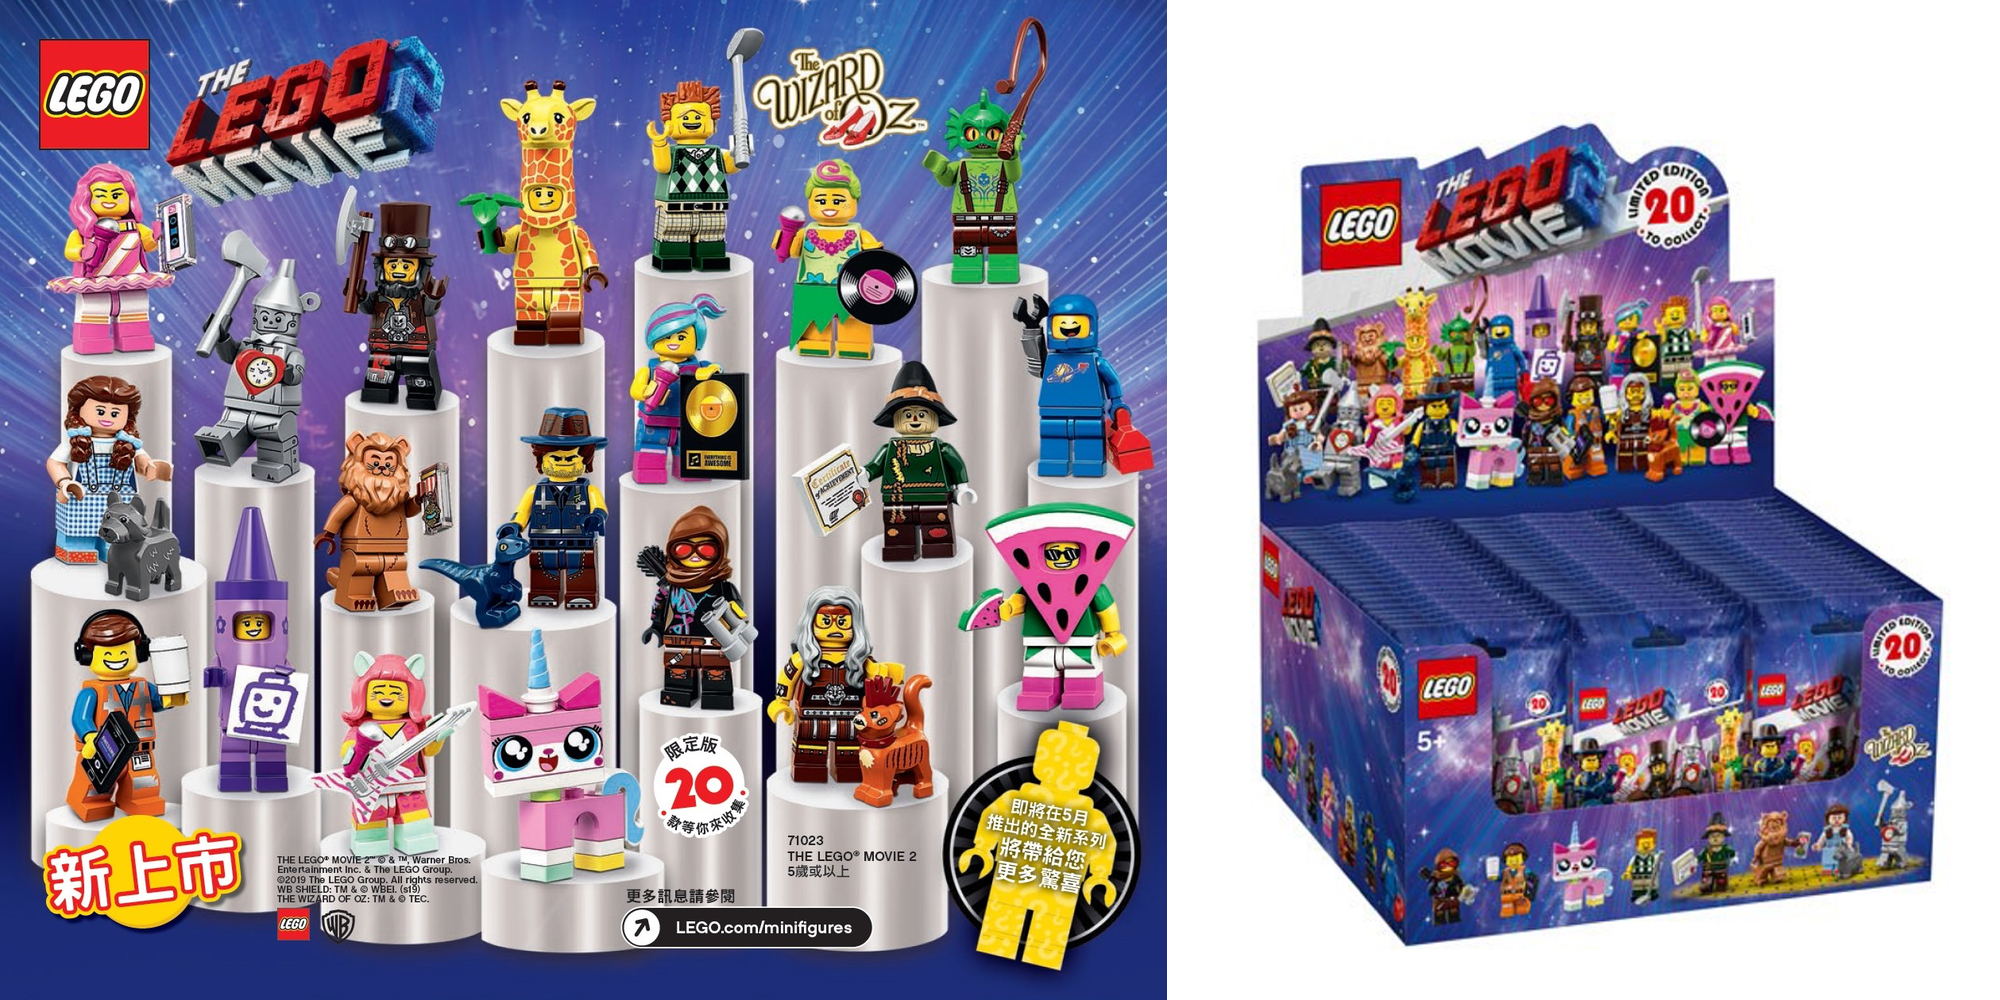 Here S Our First Official Look At 20 Upcoming The Lego Movie 2 Collectible Minifigures 9to5toys